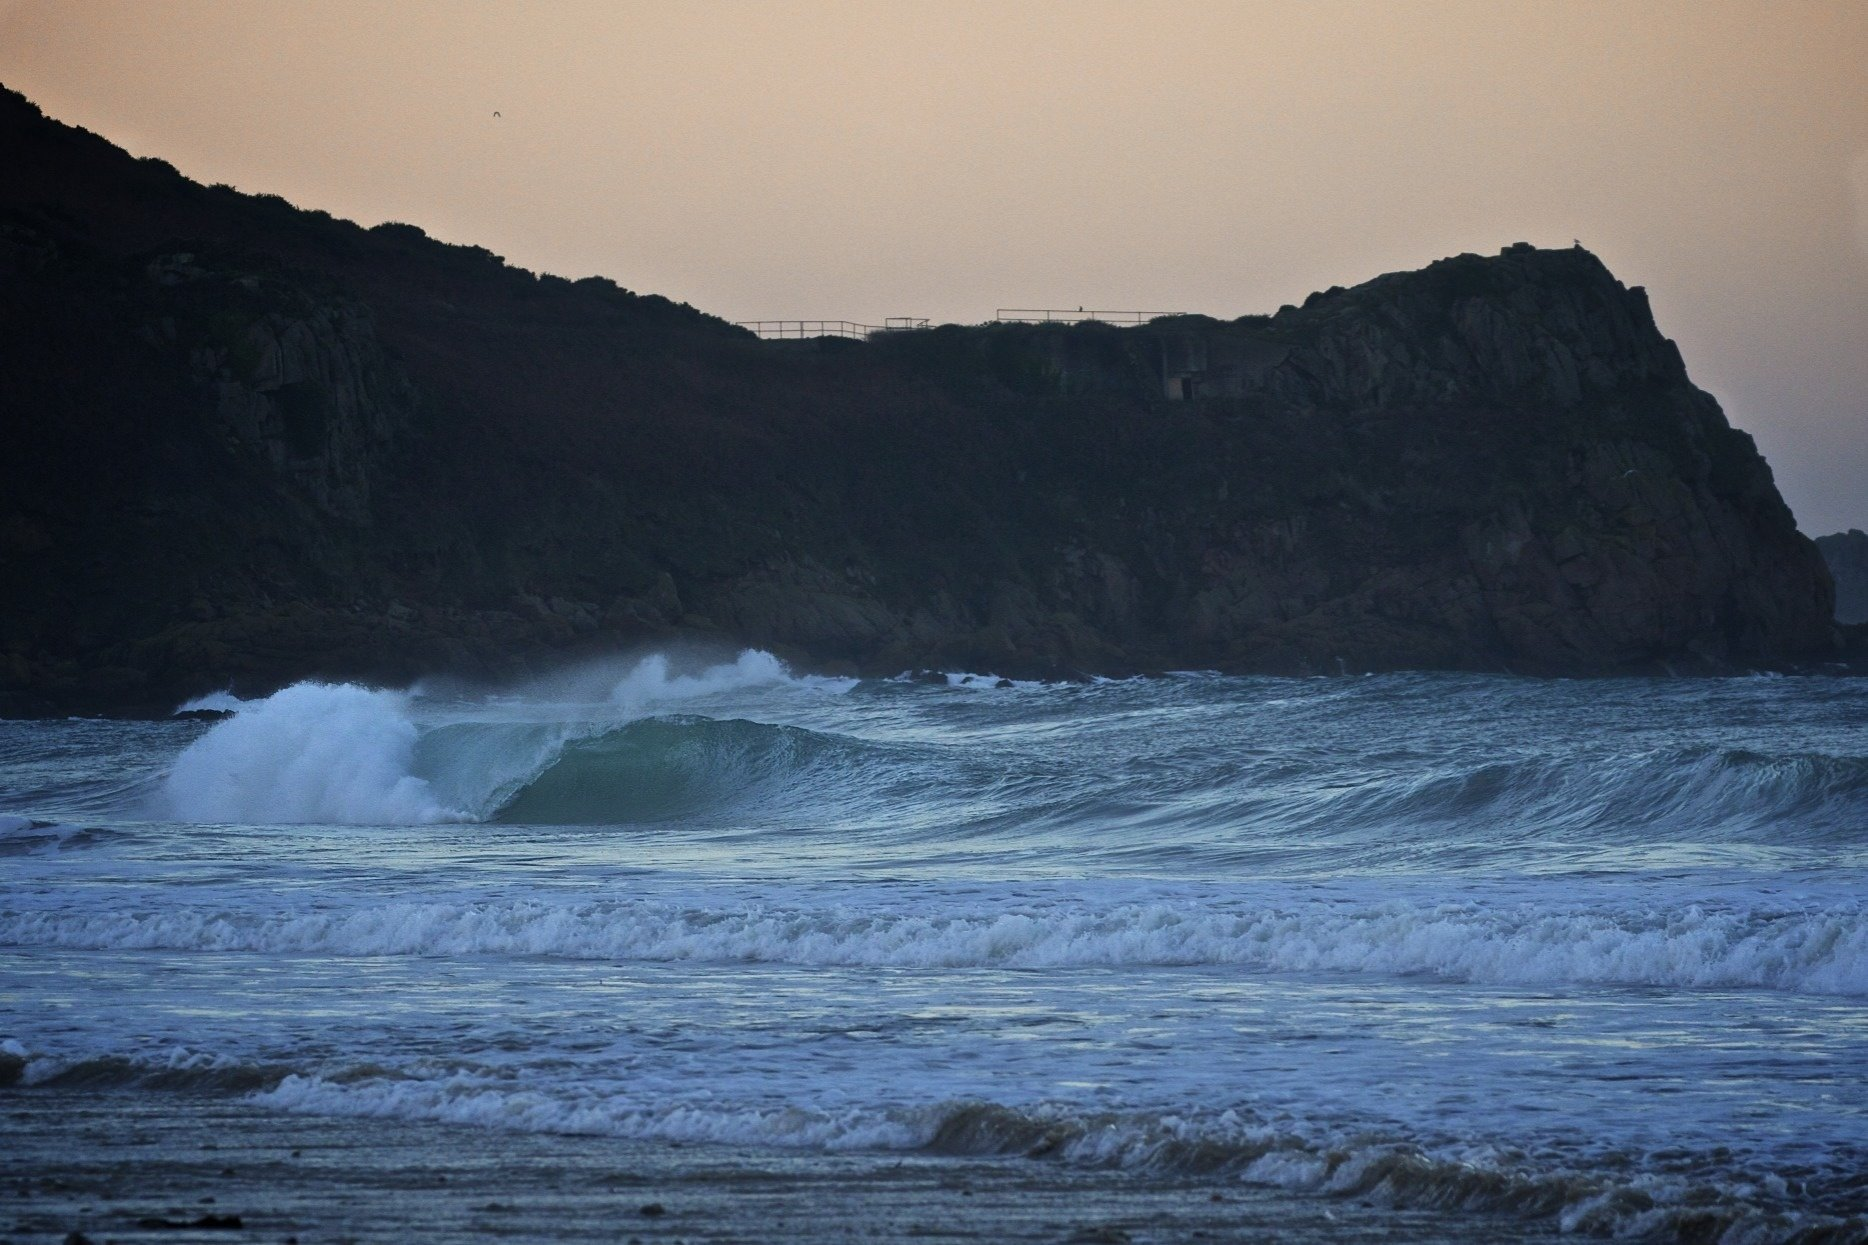 Nick Utting's photo of Jersey